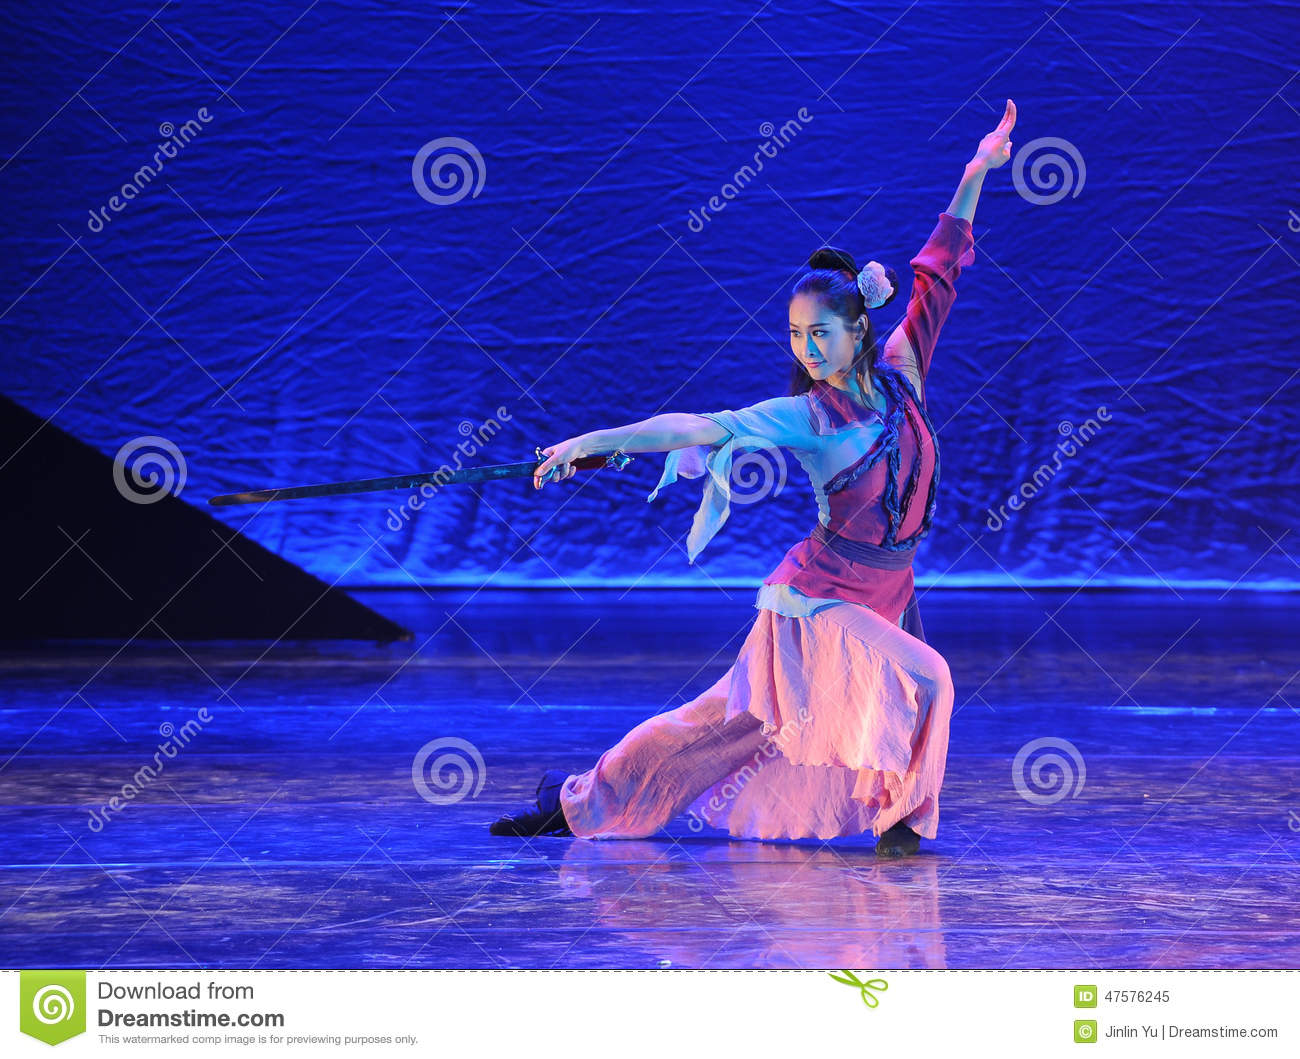 The Sword Dance-The Dance Drama The Legend Of The Condor